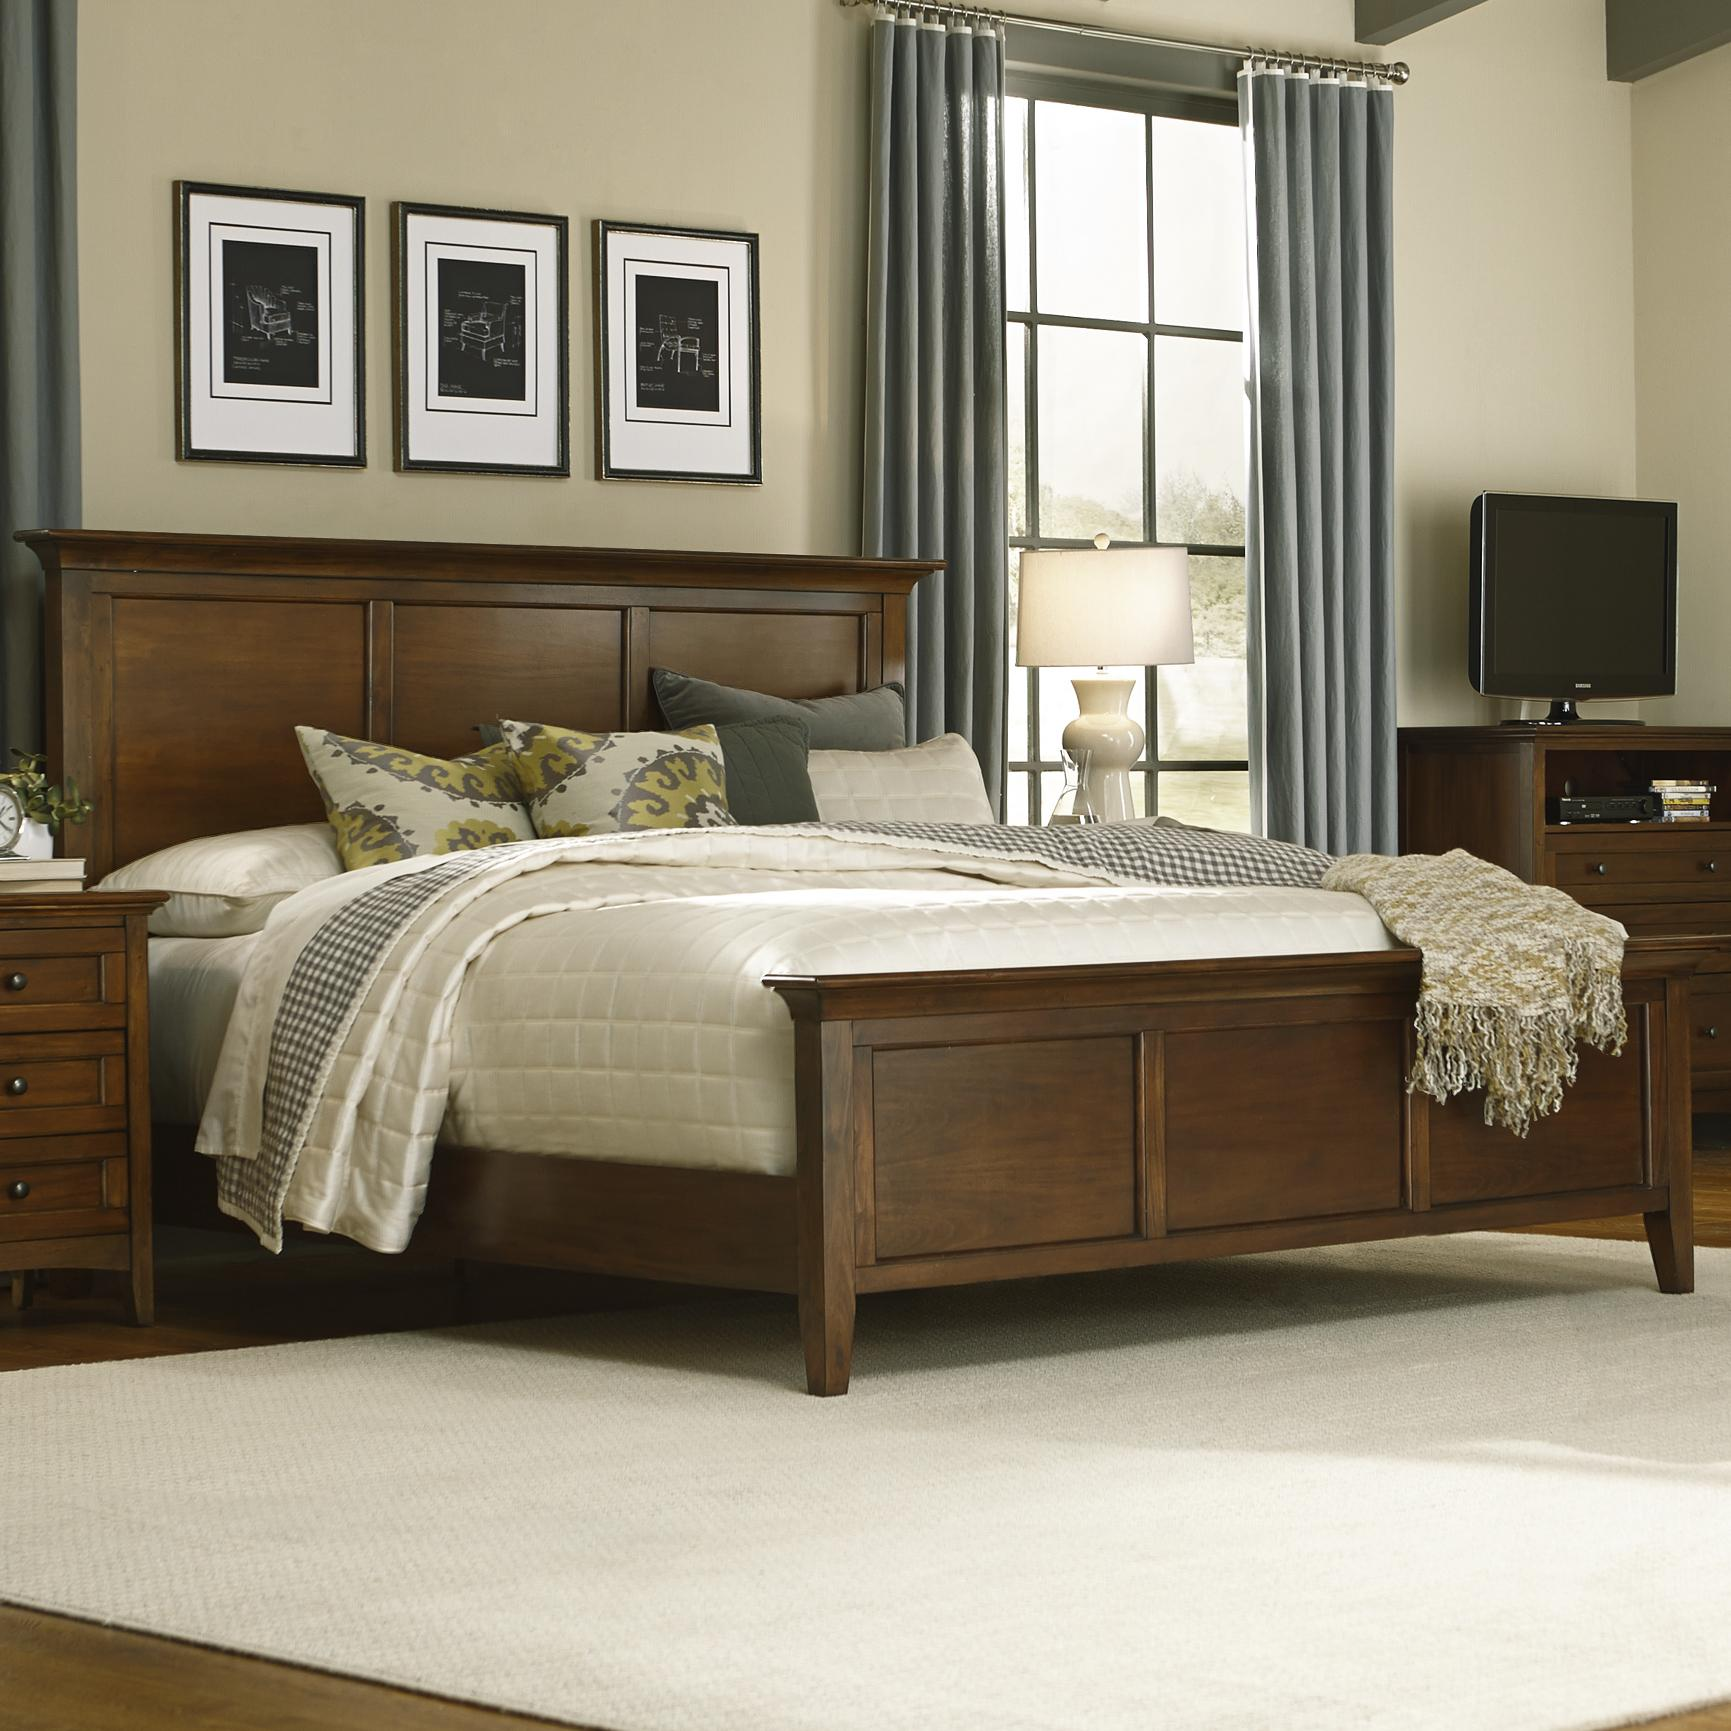 Aamerica westlake queen panel bed fashion furniture for Panel bed mattress